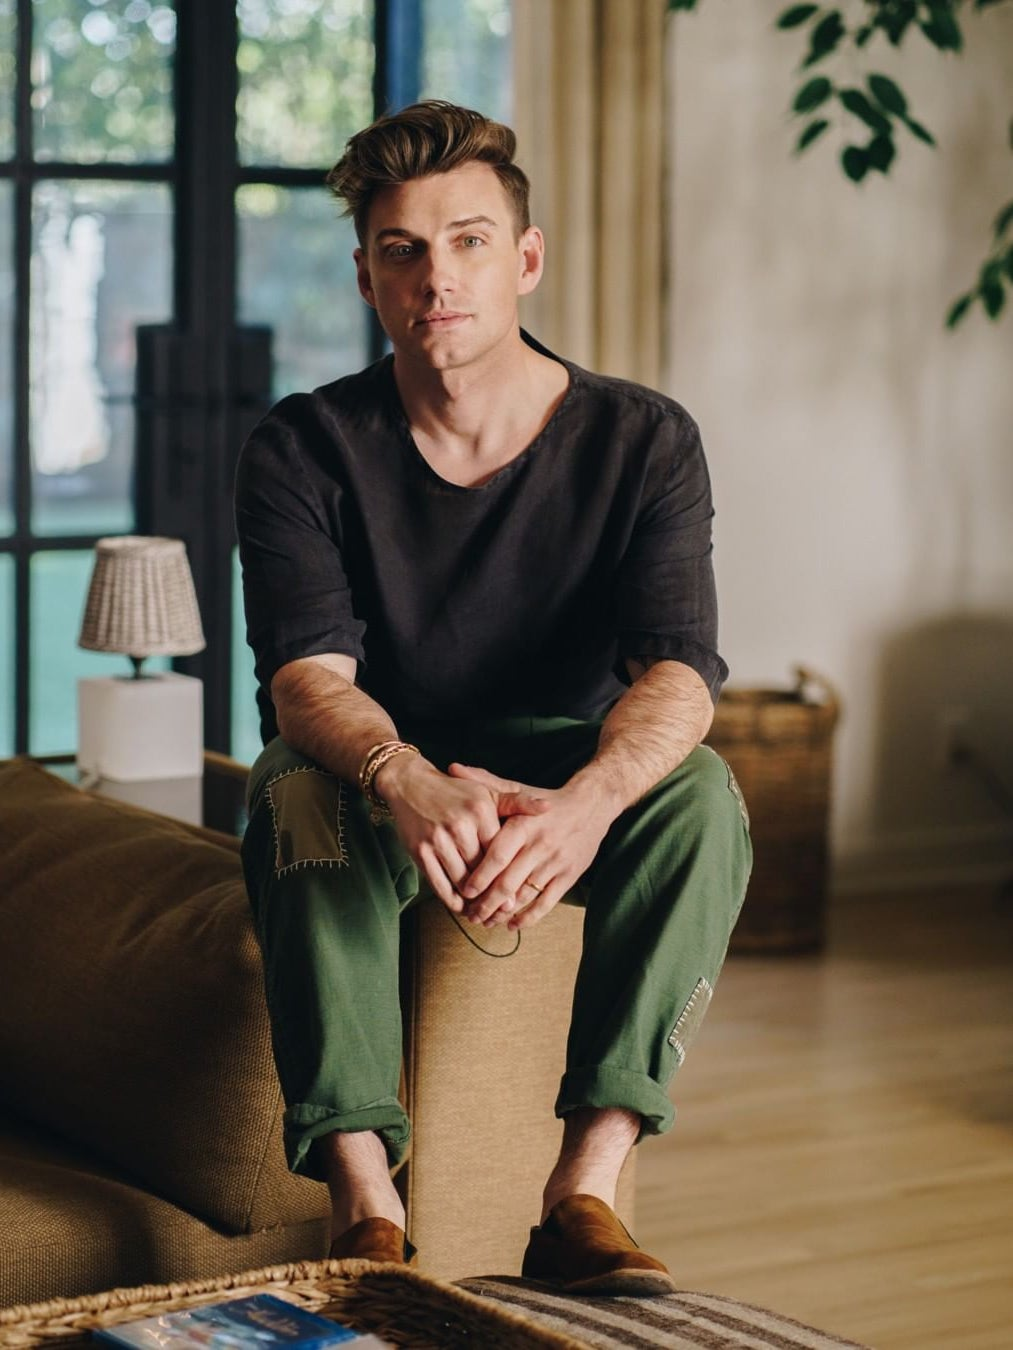 The Best Budget Decor Steal in Jeremiah Brent's Home